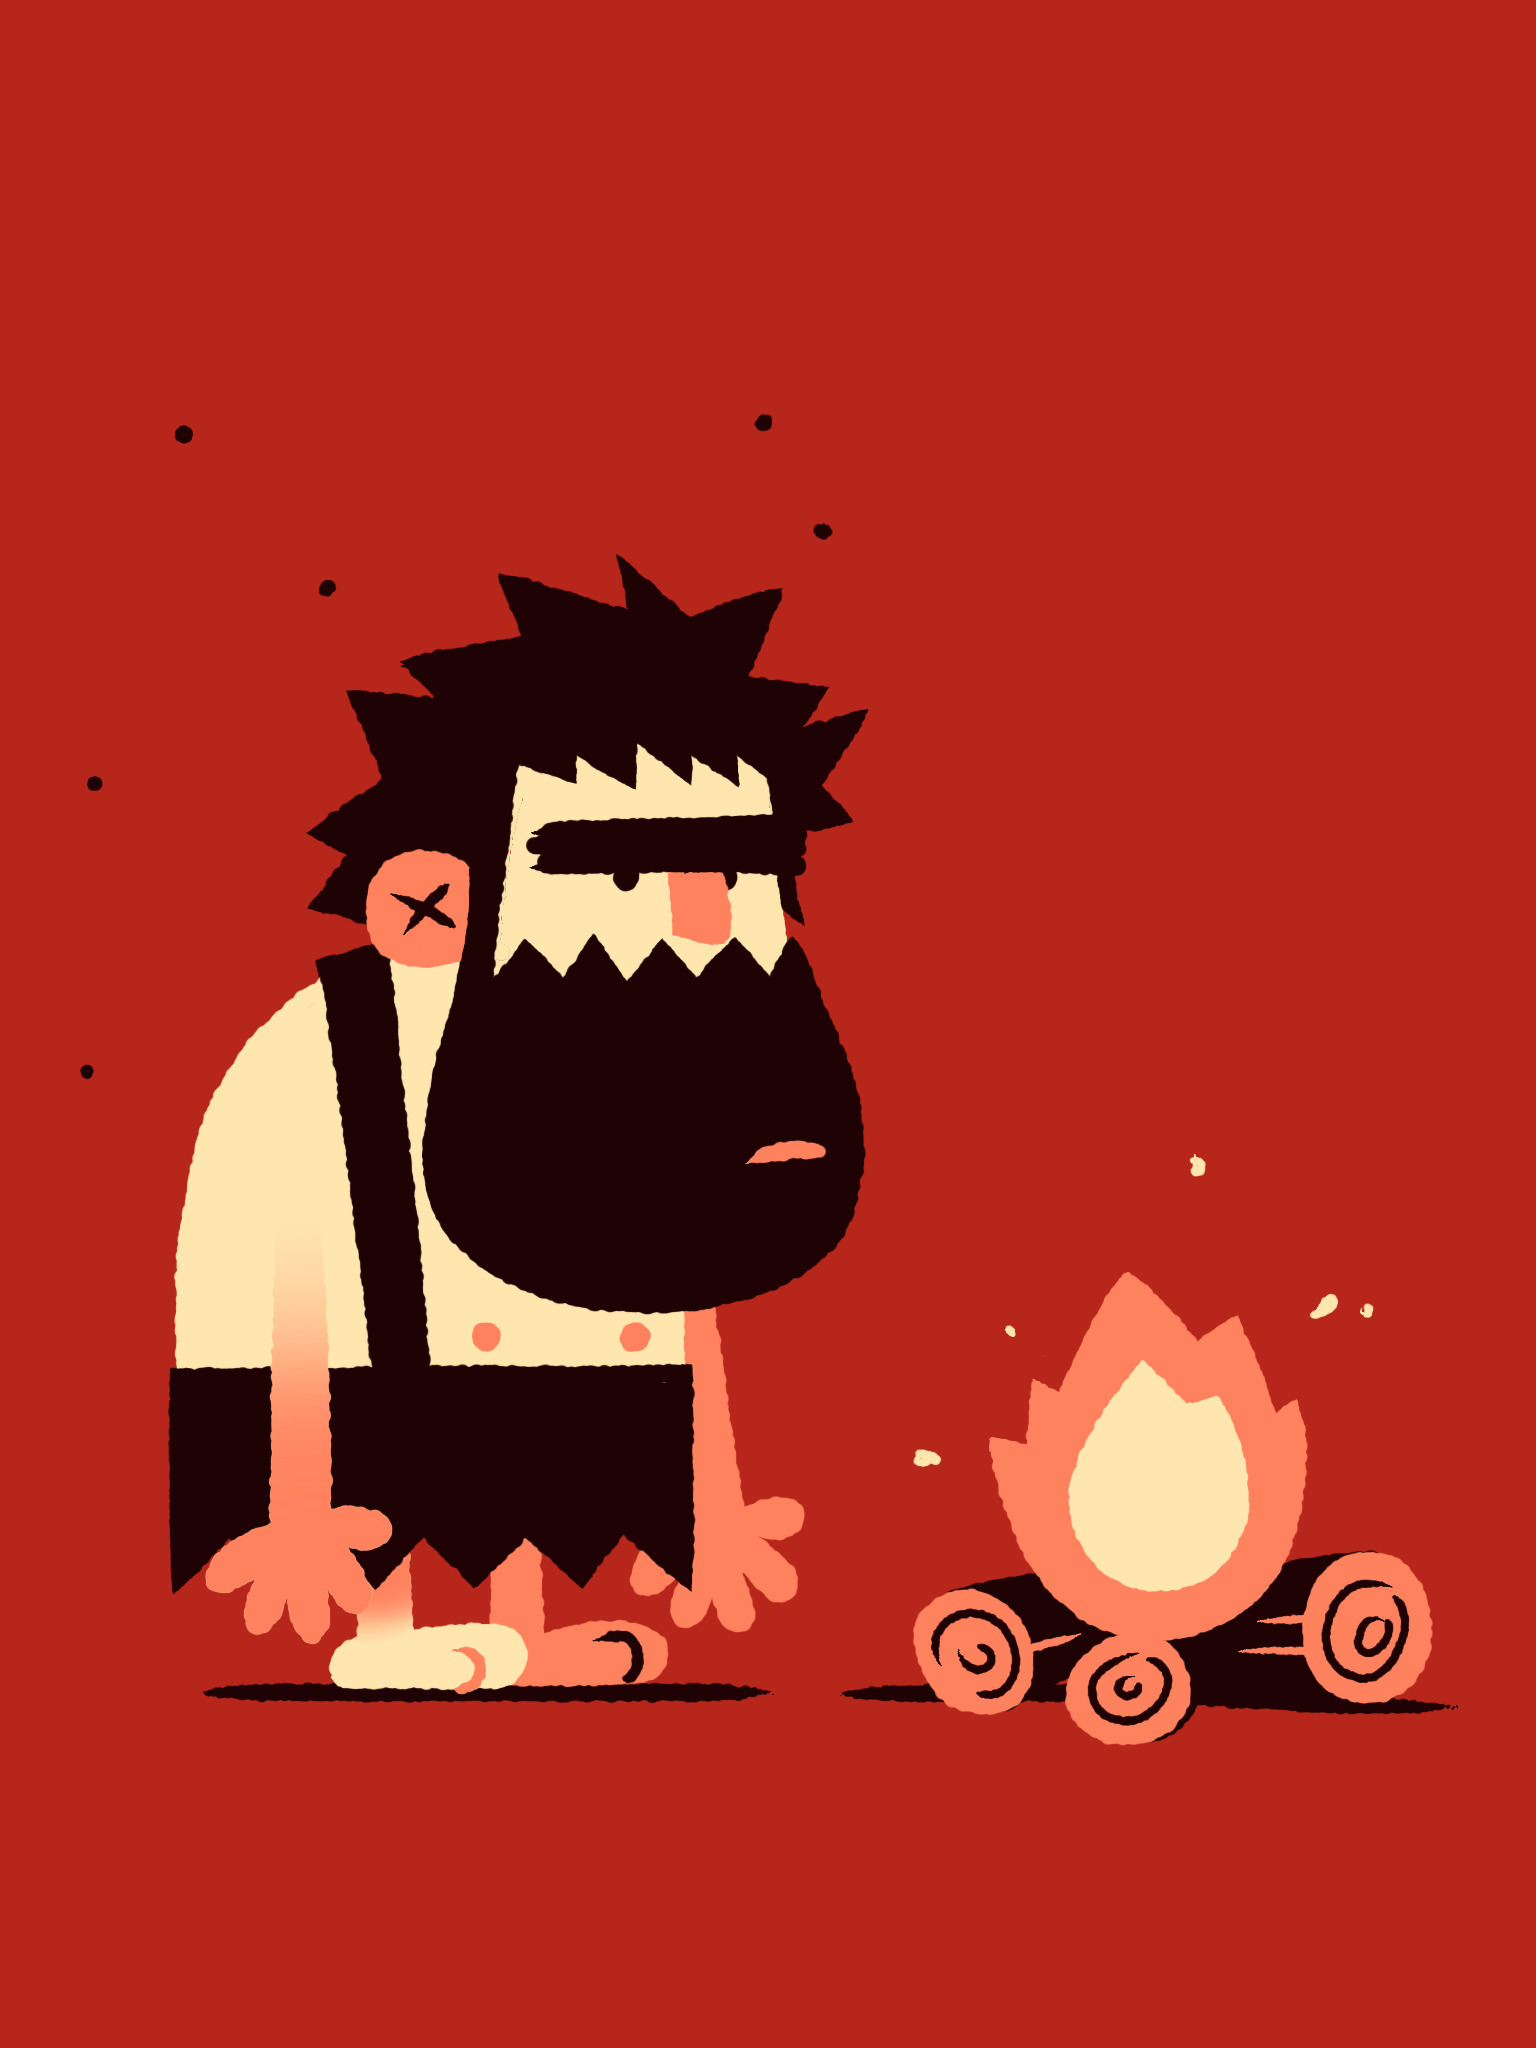 caveman fire - illustration, characterdesign - joshuamenas | ello